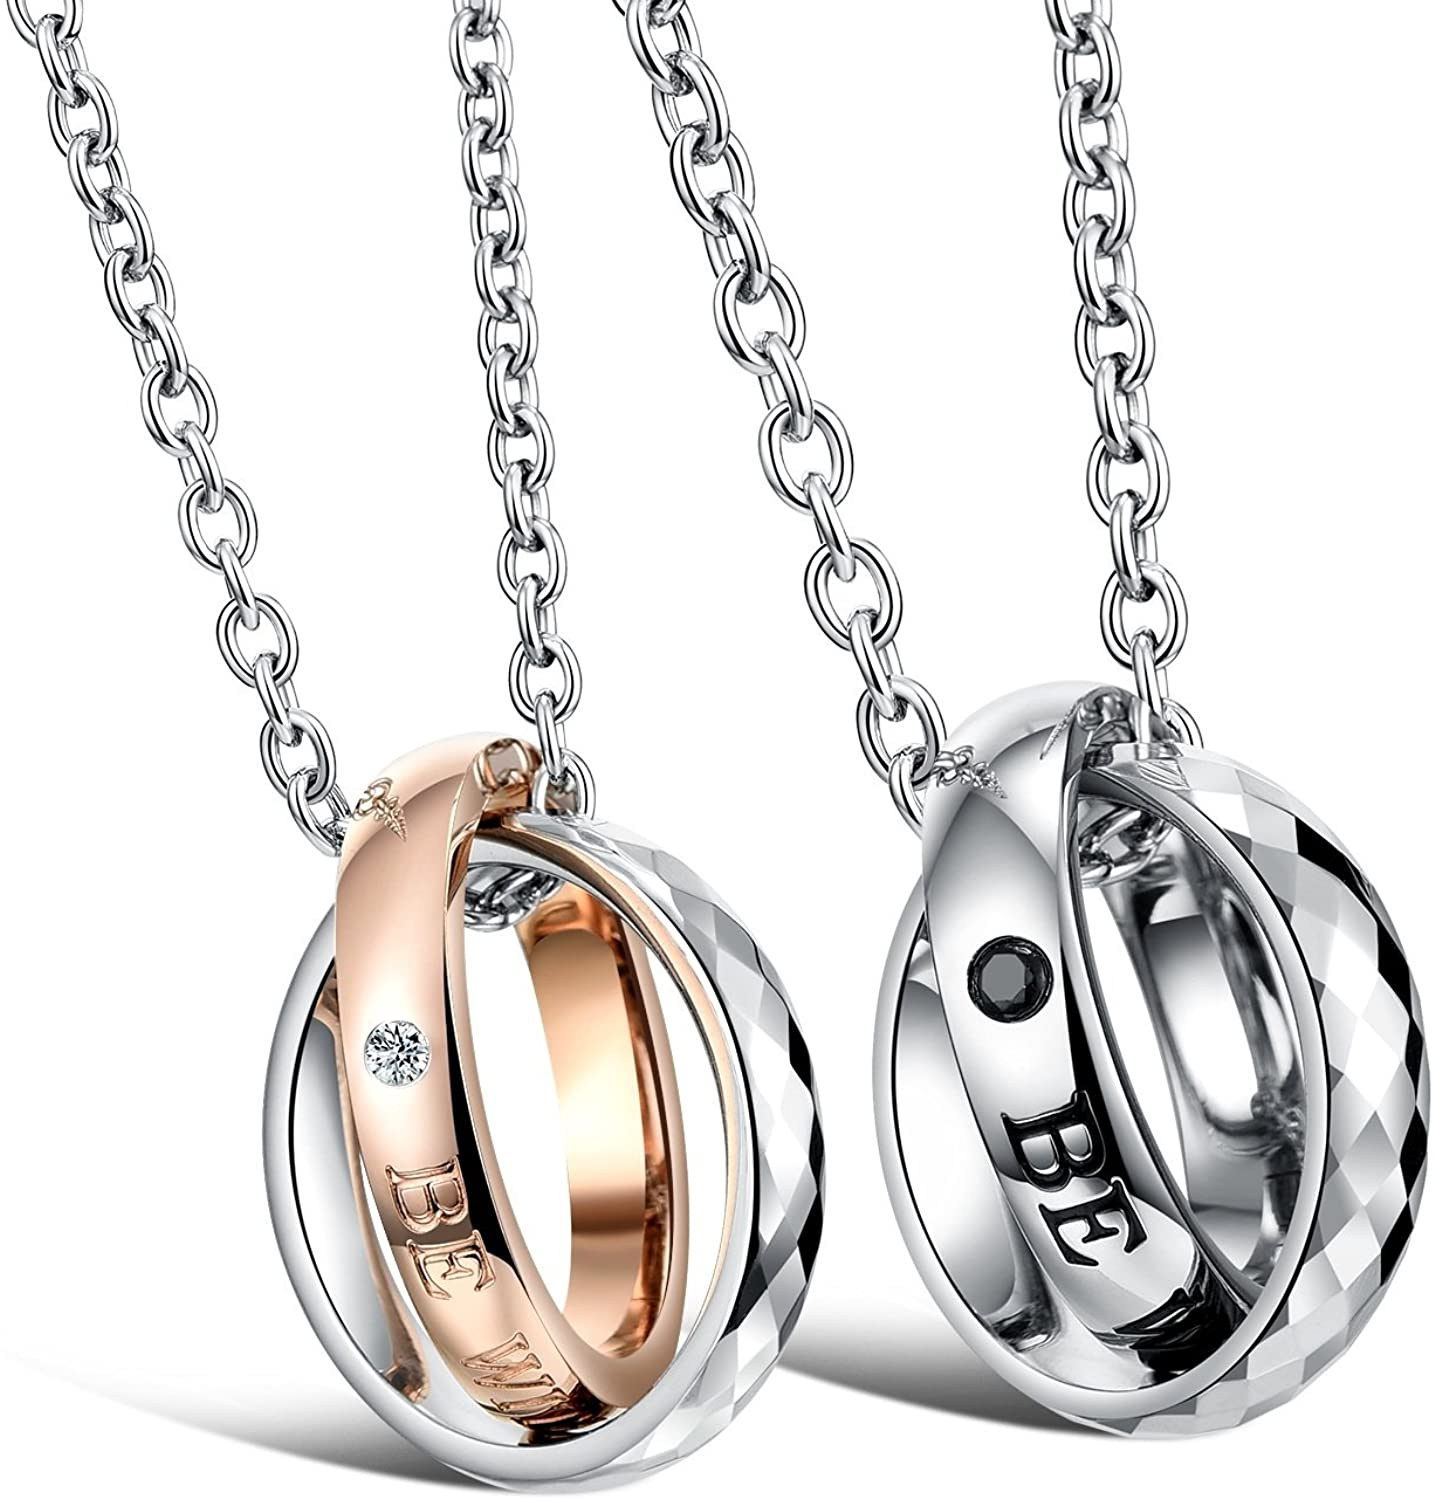 His & Hers Matching Set Titanium Stainless Steel Couple Pendant Necklace Love Style in a Gift Box (A Set)